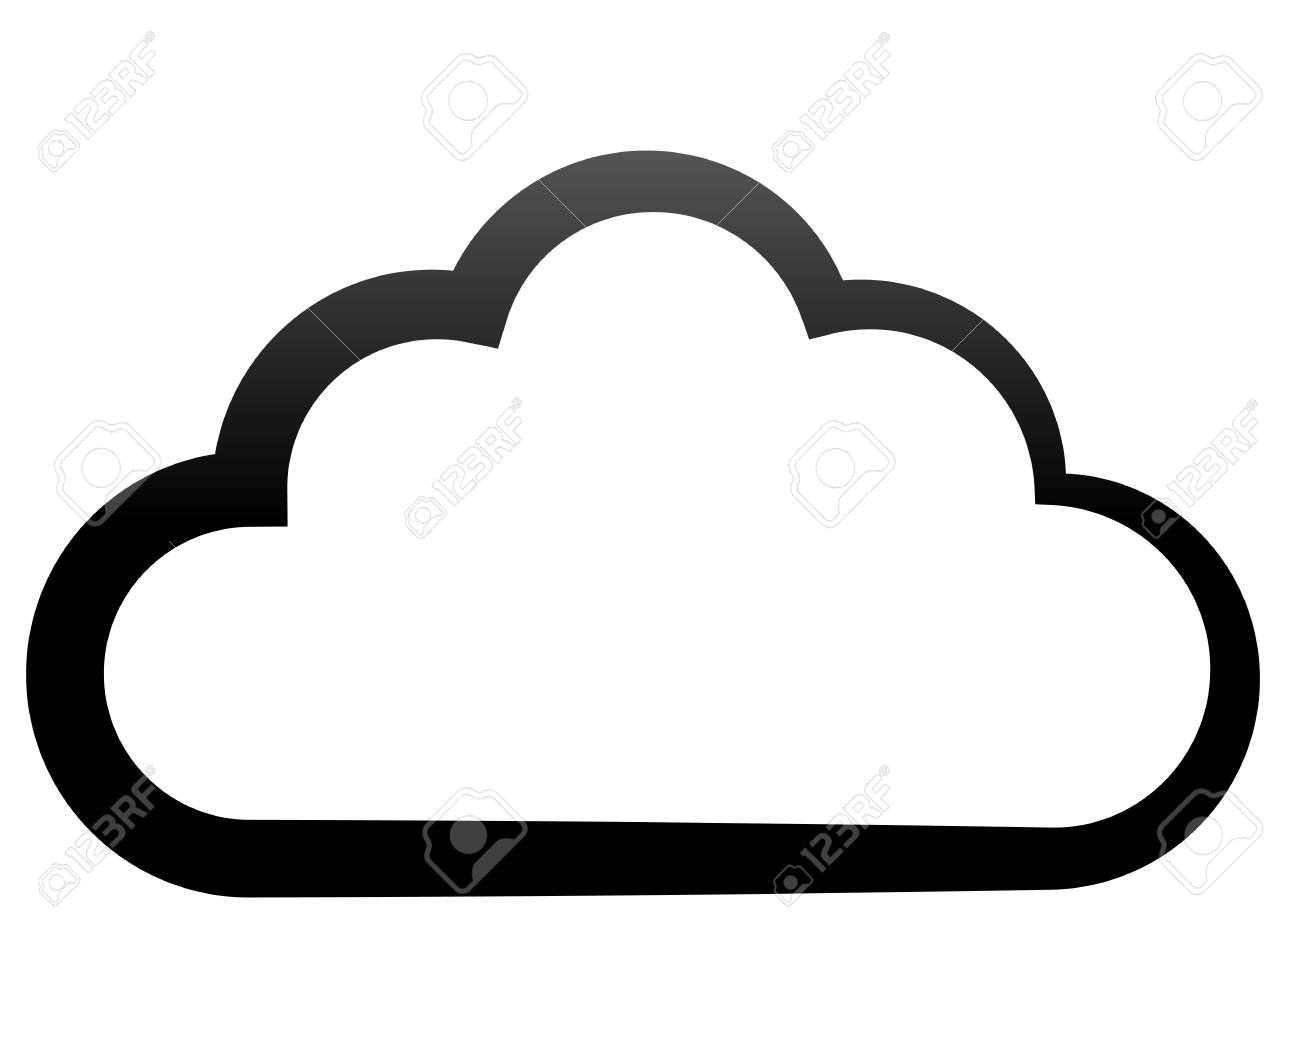 cloud symbol icon - black gradient outline, isolated - vector illustration  #sponsored , #ad, #icon, #black, #cloud, #sy… | symbols, vector  illustration, logo design  pinterest